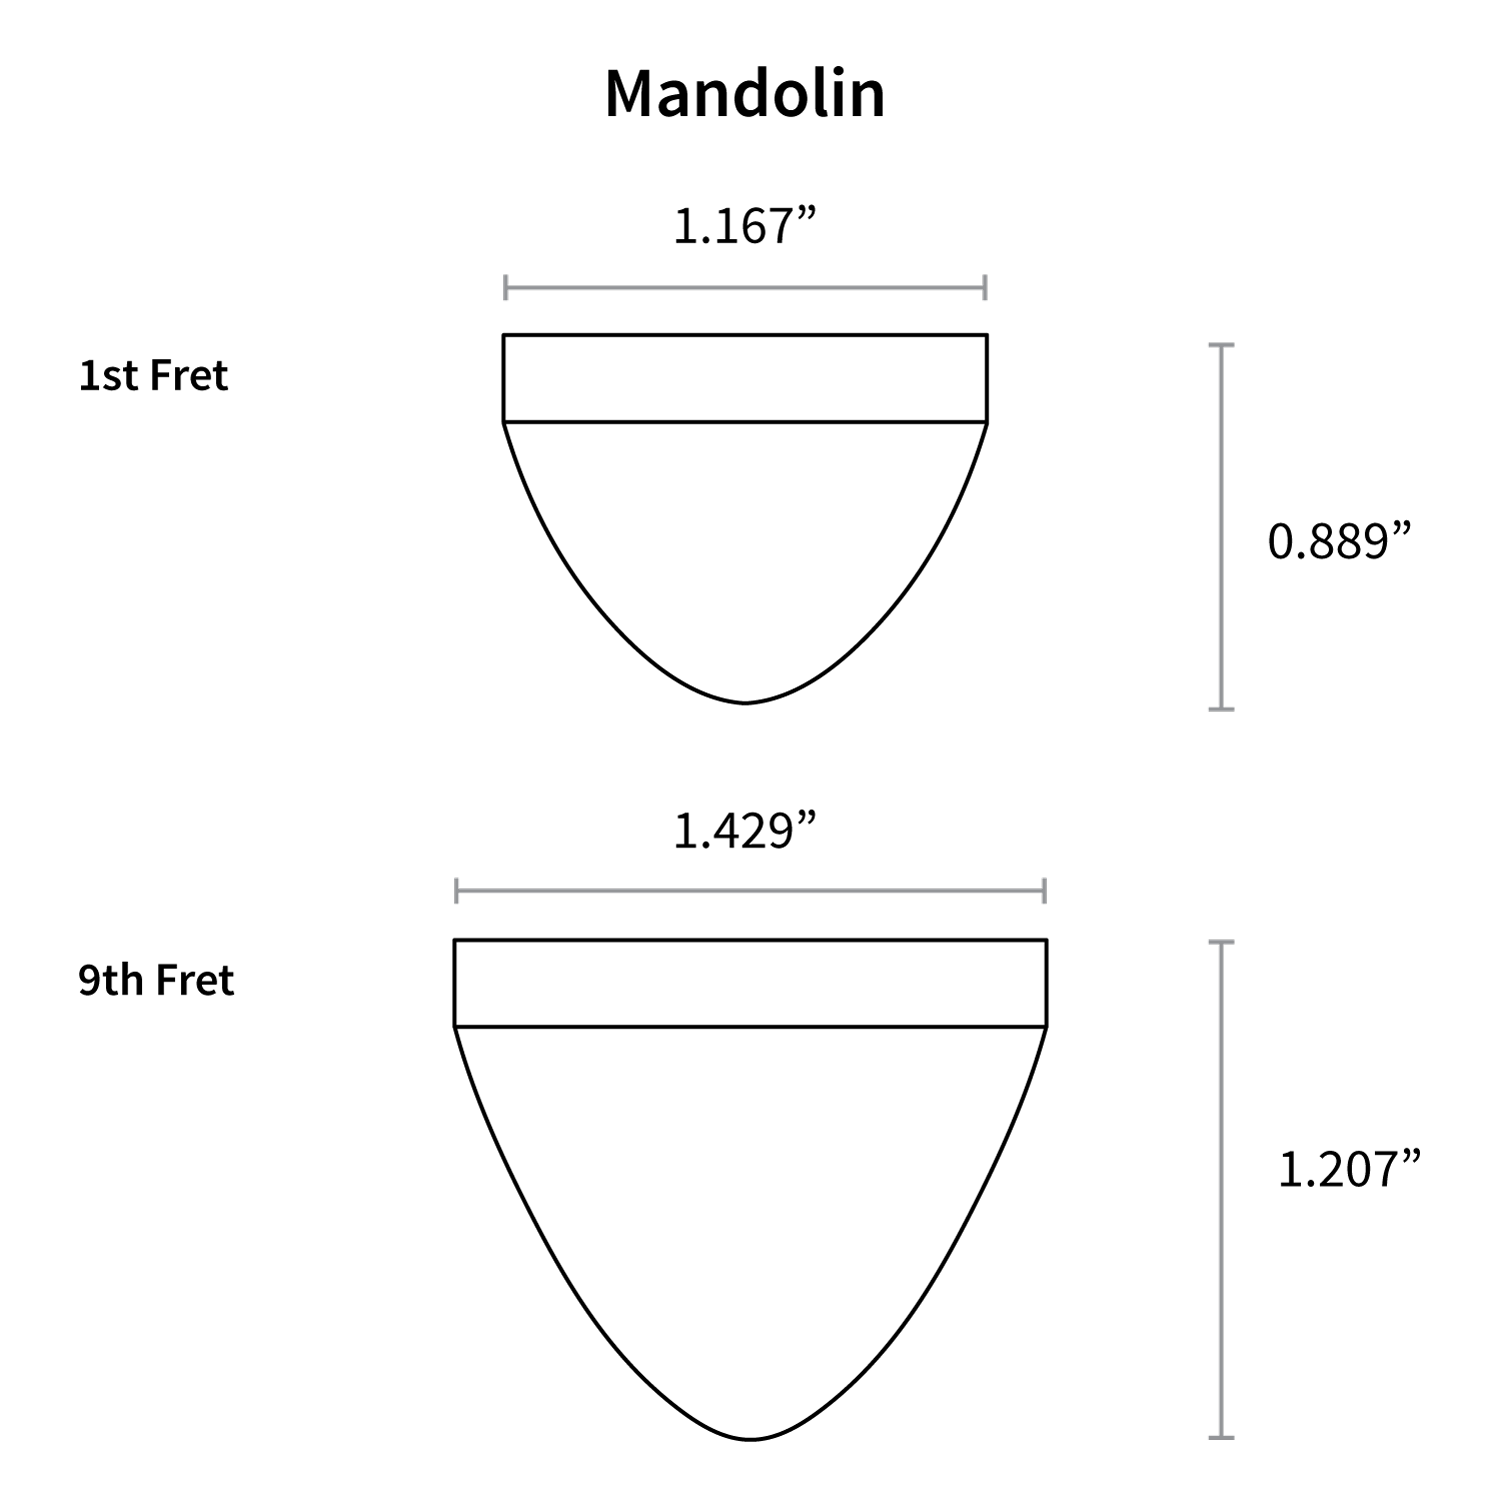 hight resolution of mandolin neck diagram images gallery